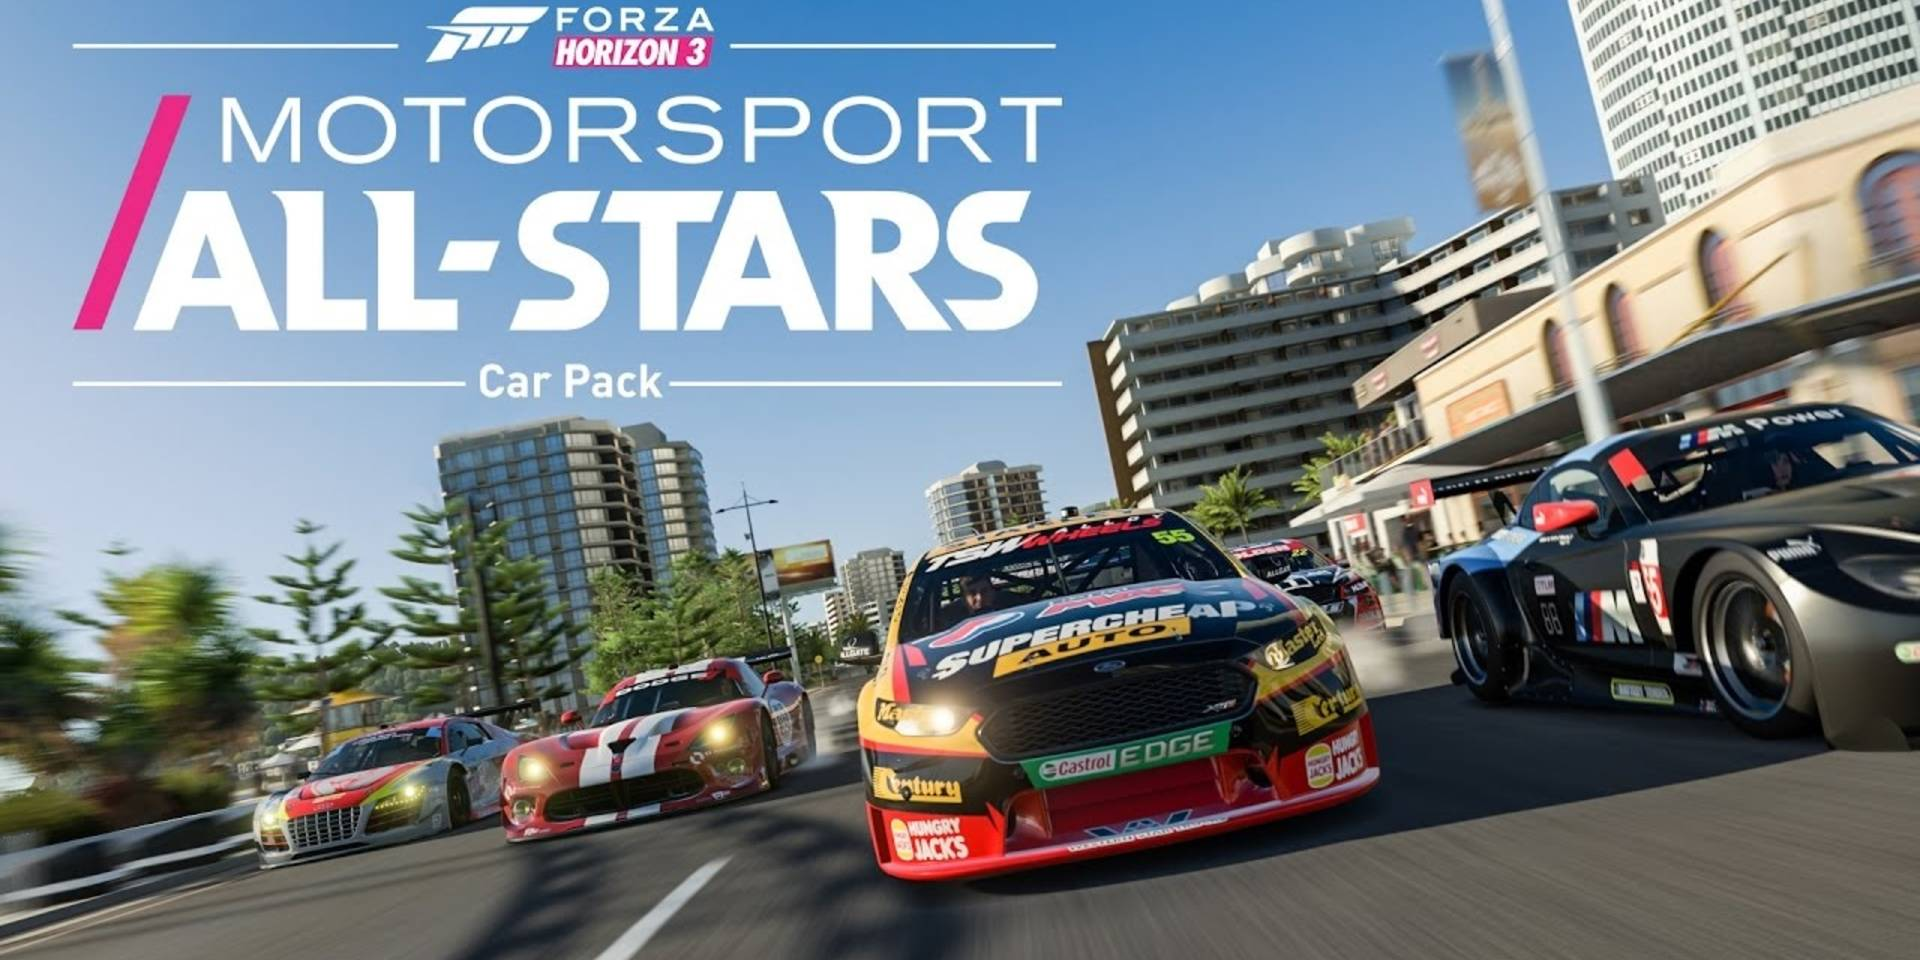 watch forza horizon 3 s motorsport all stars car pack trailer ar12gaming. Black Bedroom Furniture Sets. Home Design Ideas